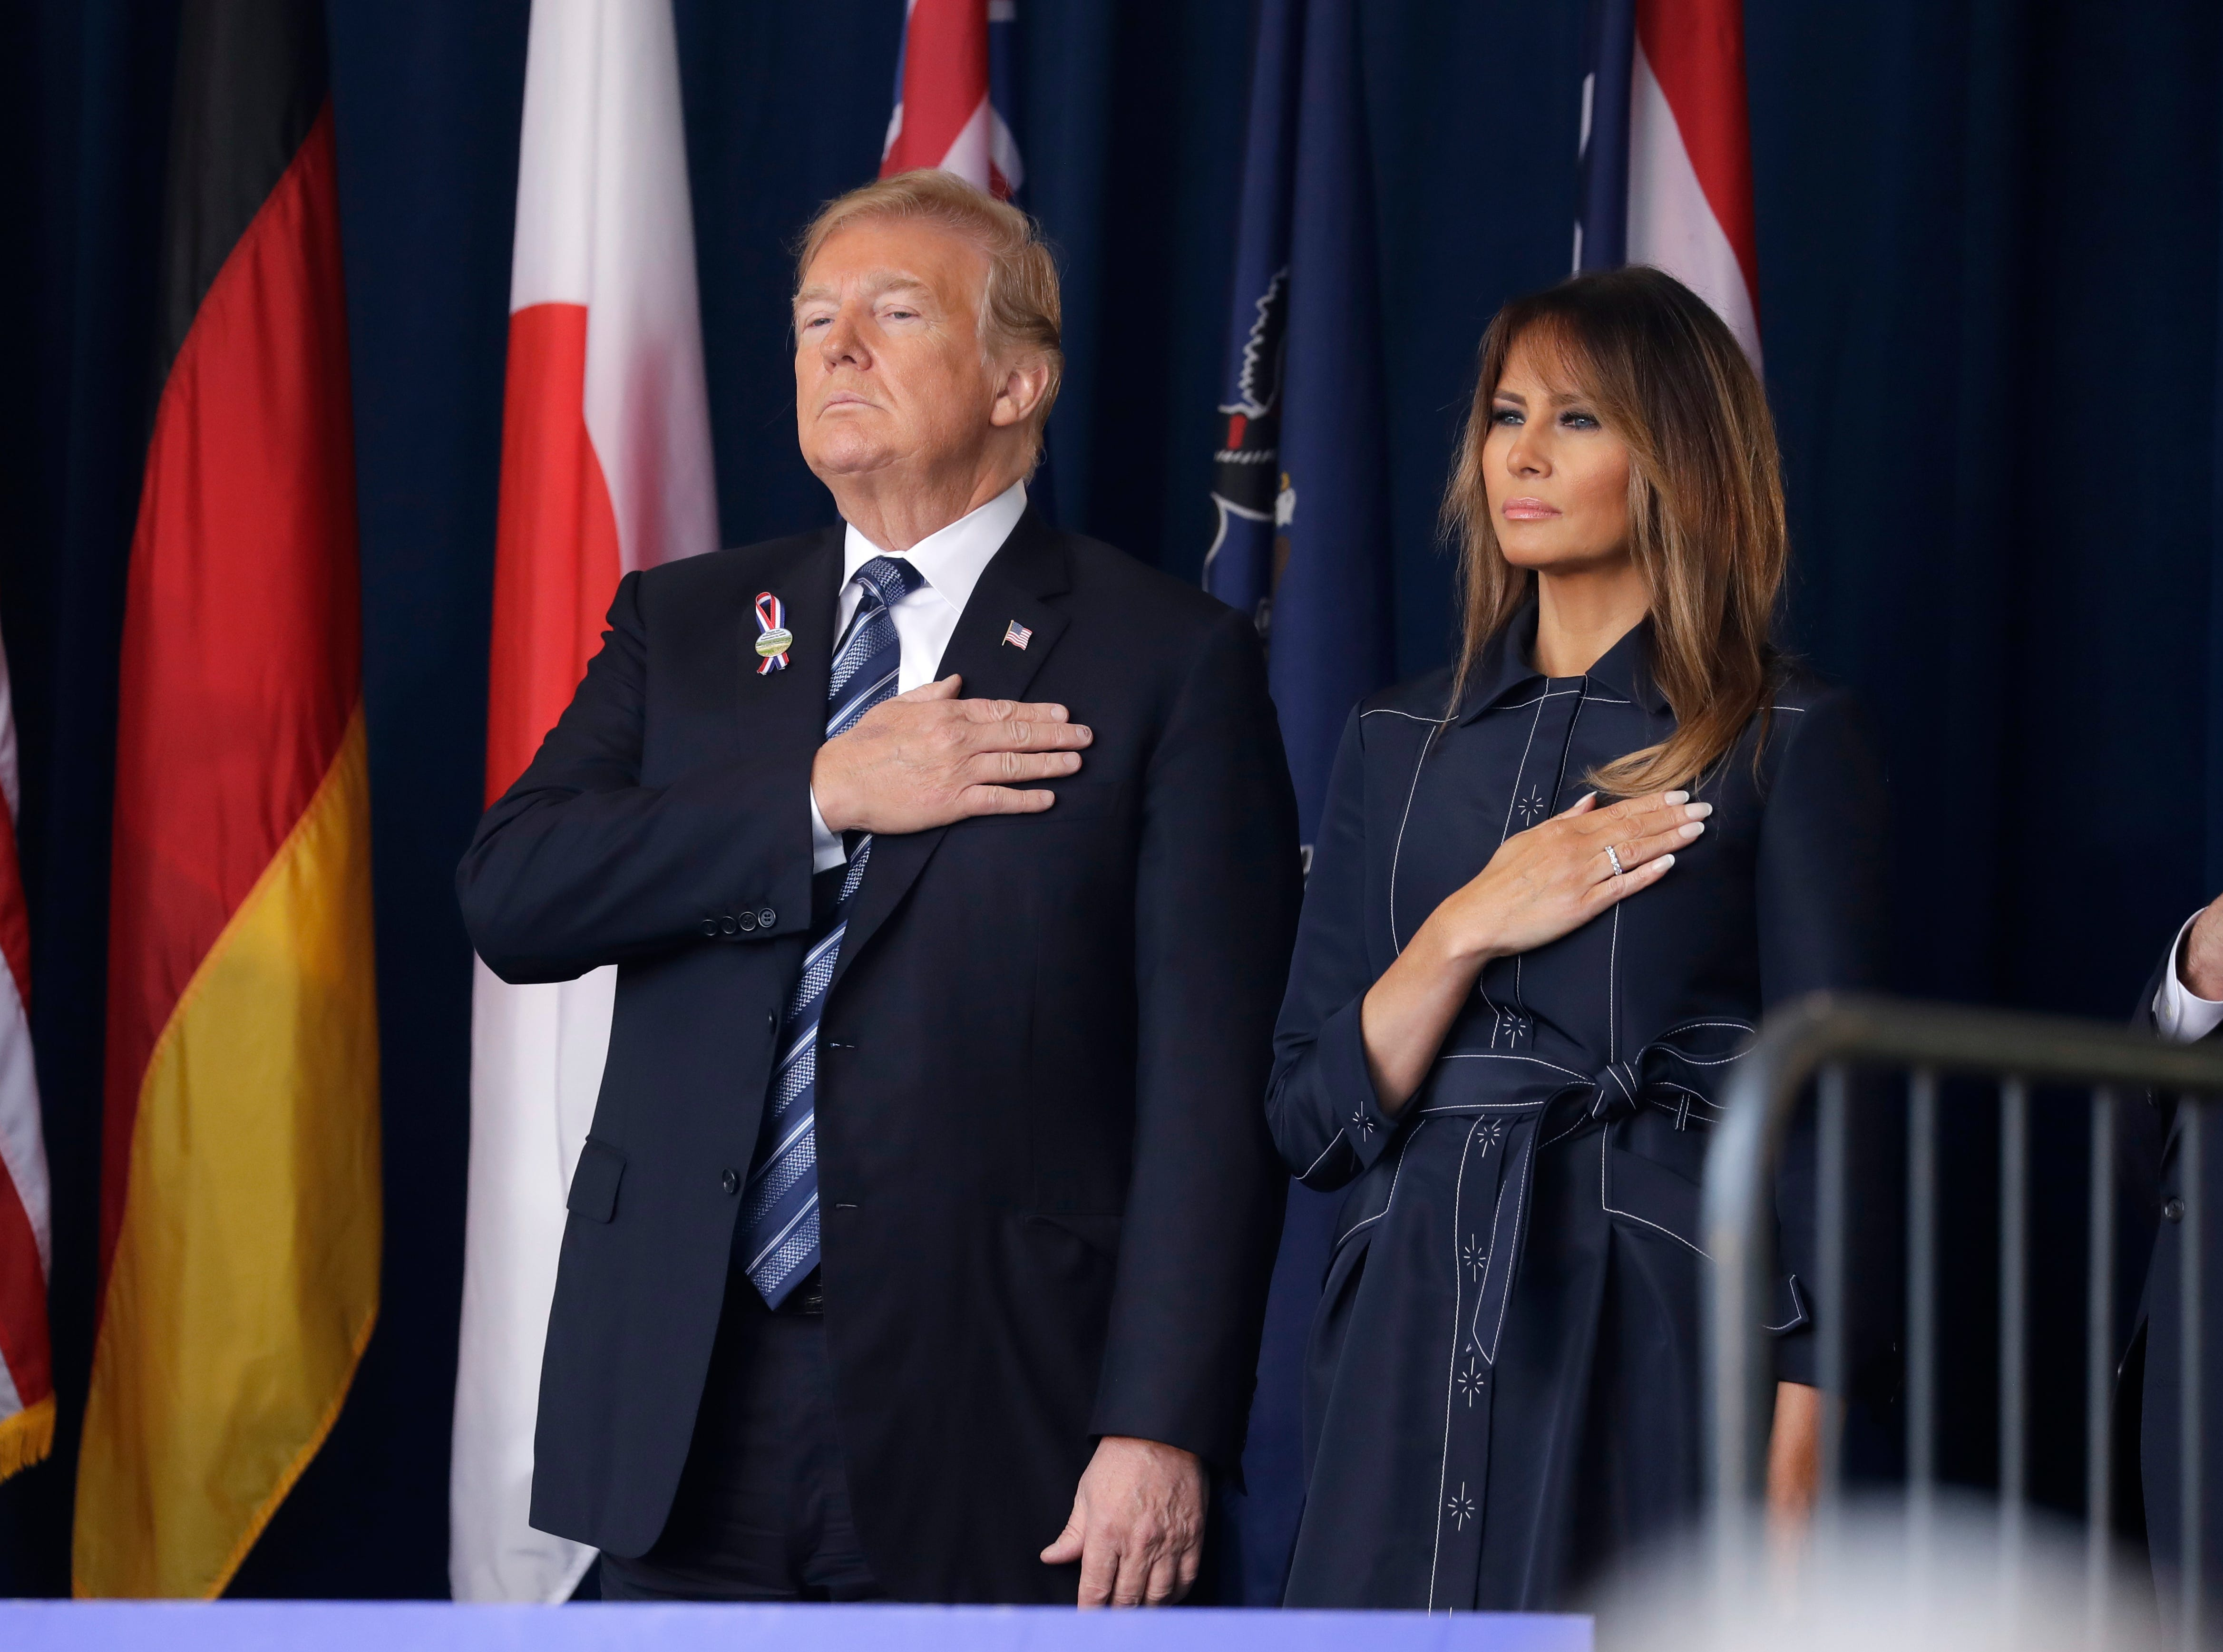 President Donald Trump and first lady Melania Trump participate in the September 11th Flight 93 Memorial Service in Shanksville, Pa.